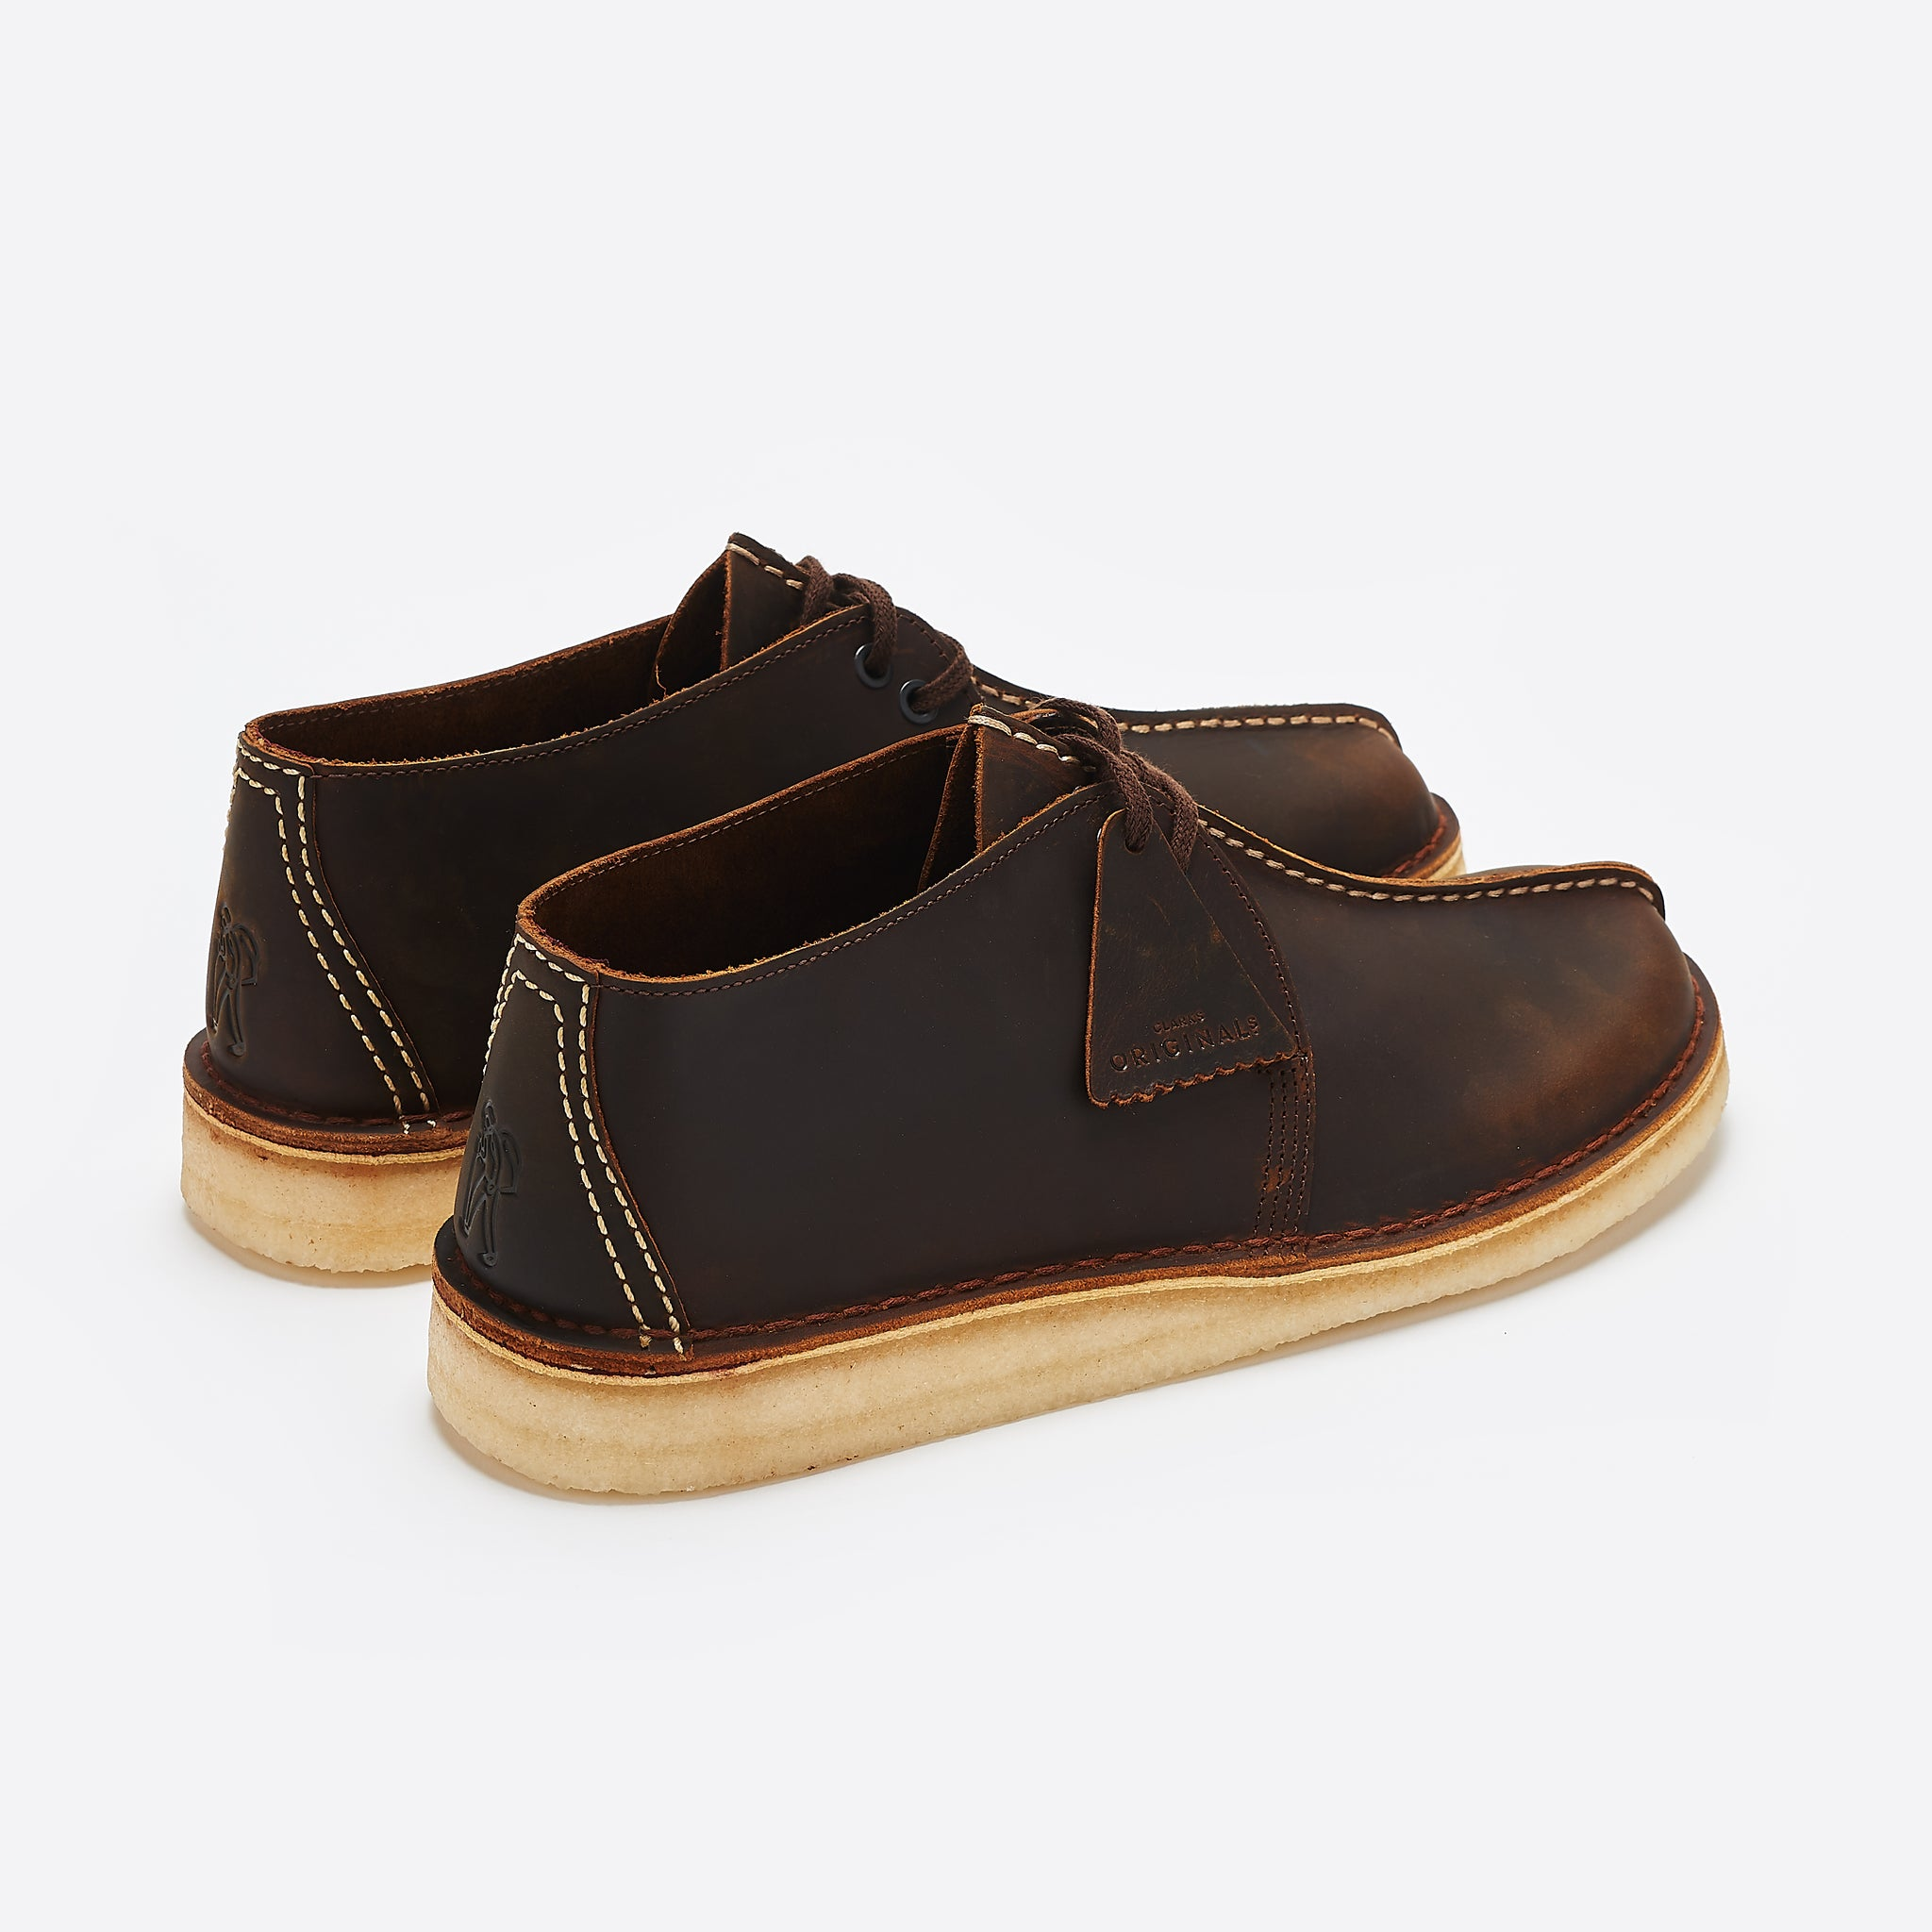 Clarks Original Desert Trek In Beeswax